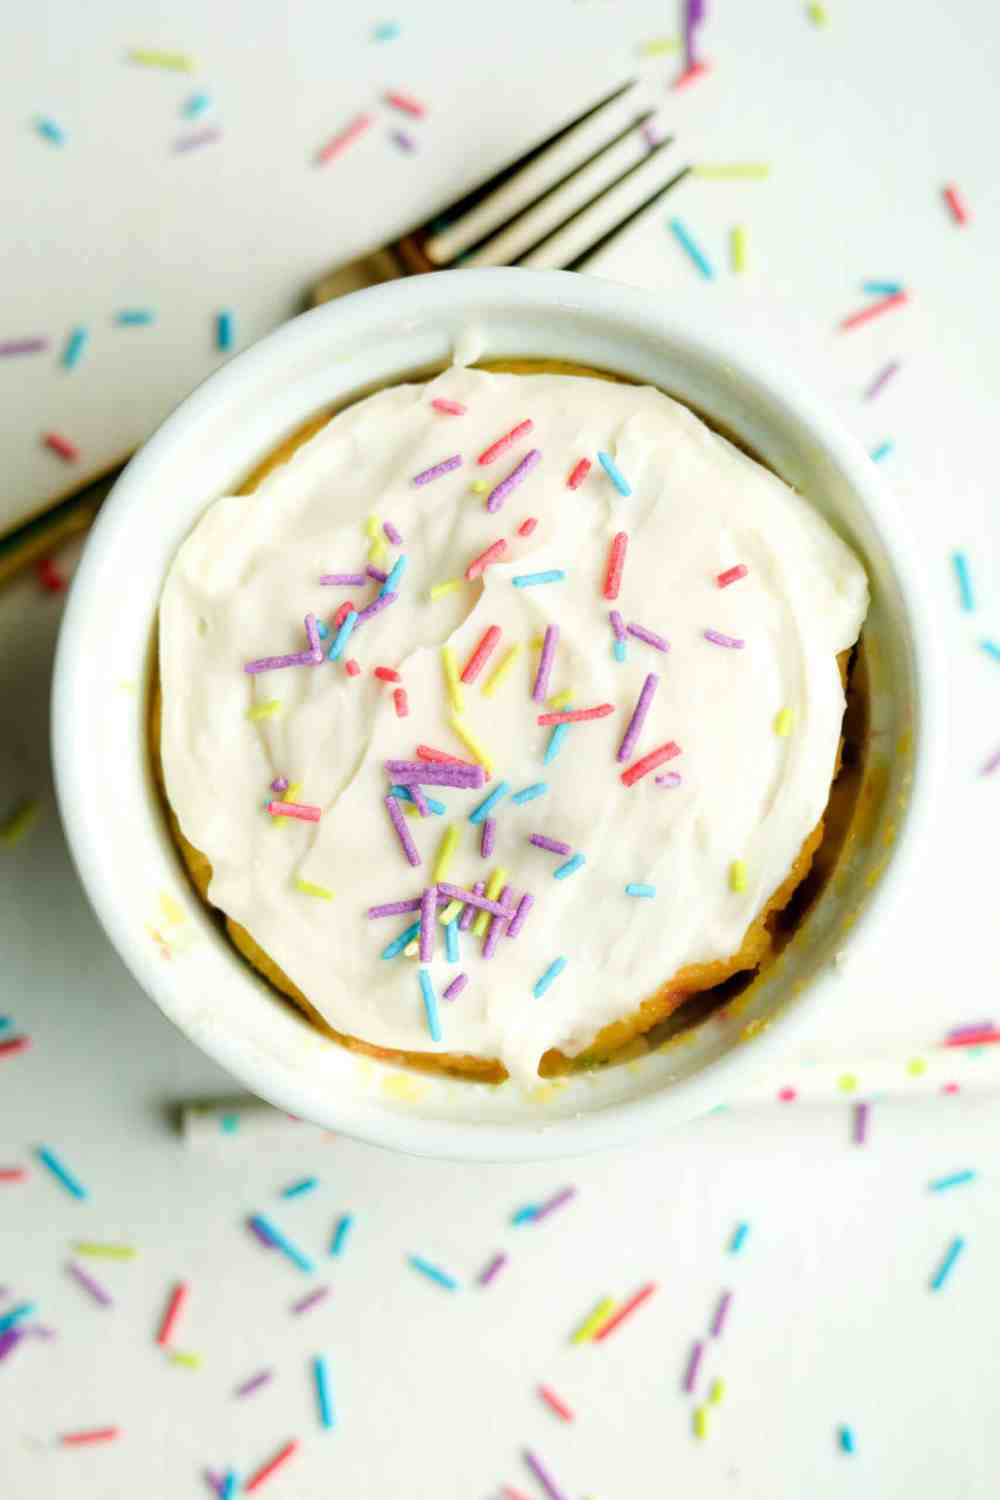 A birthday cake mug cake topped with frosting and sprinkles.